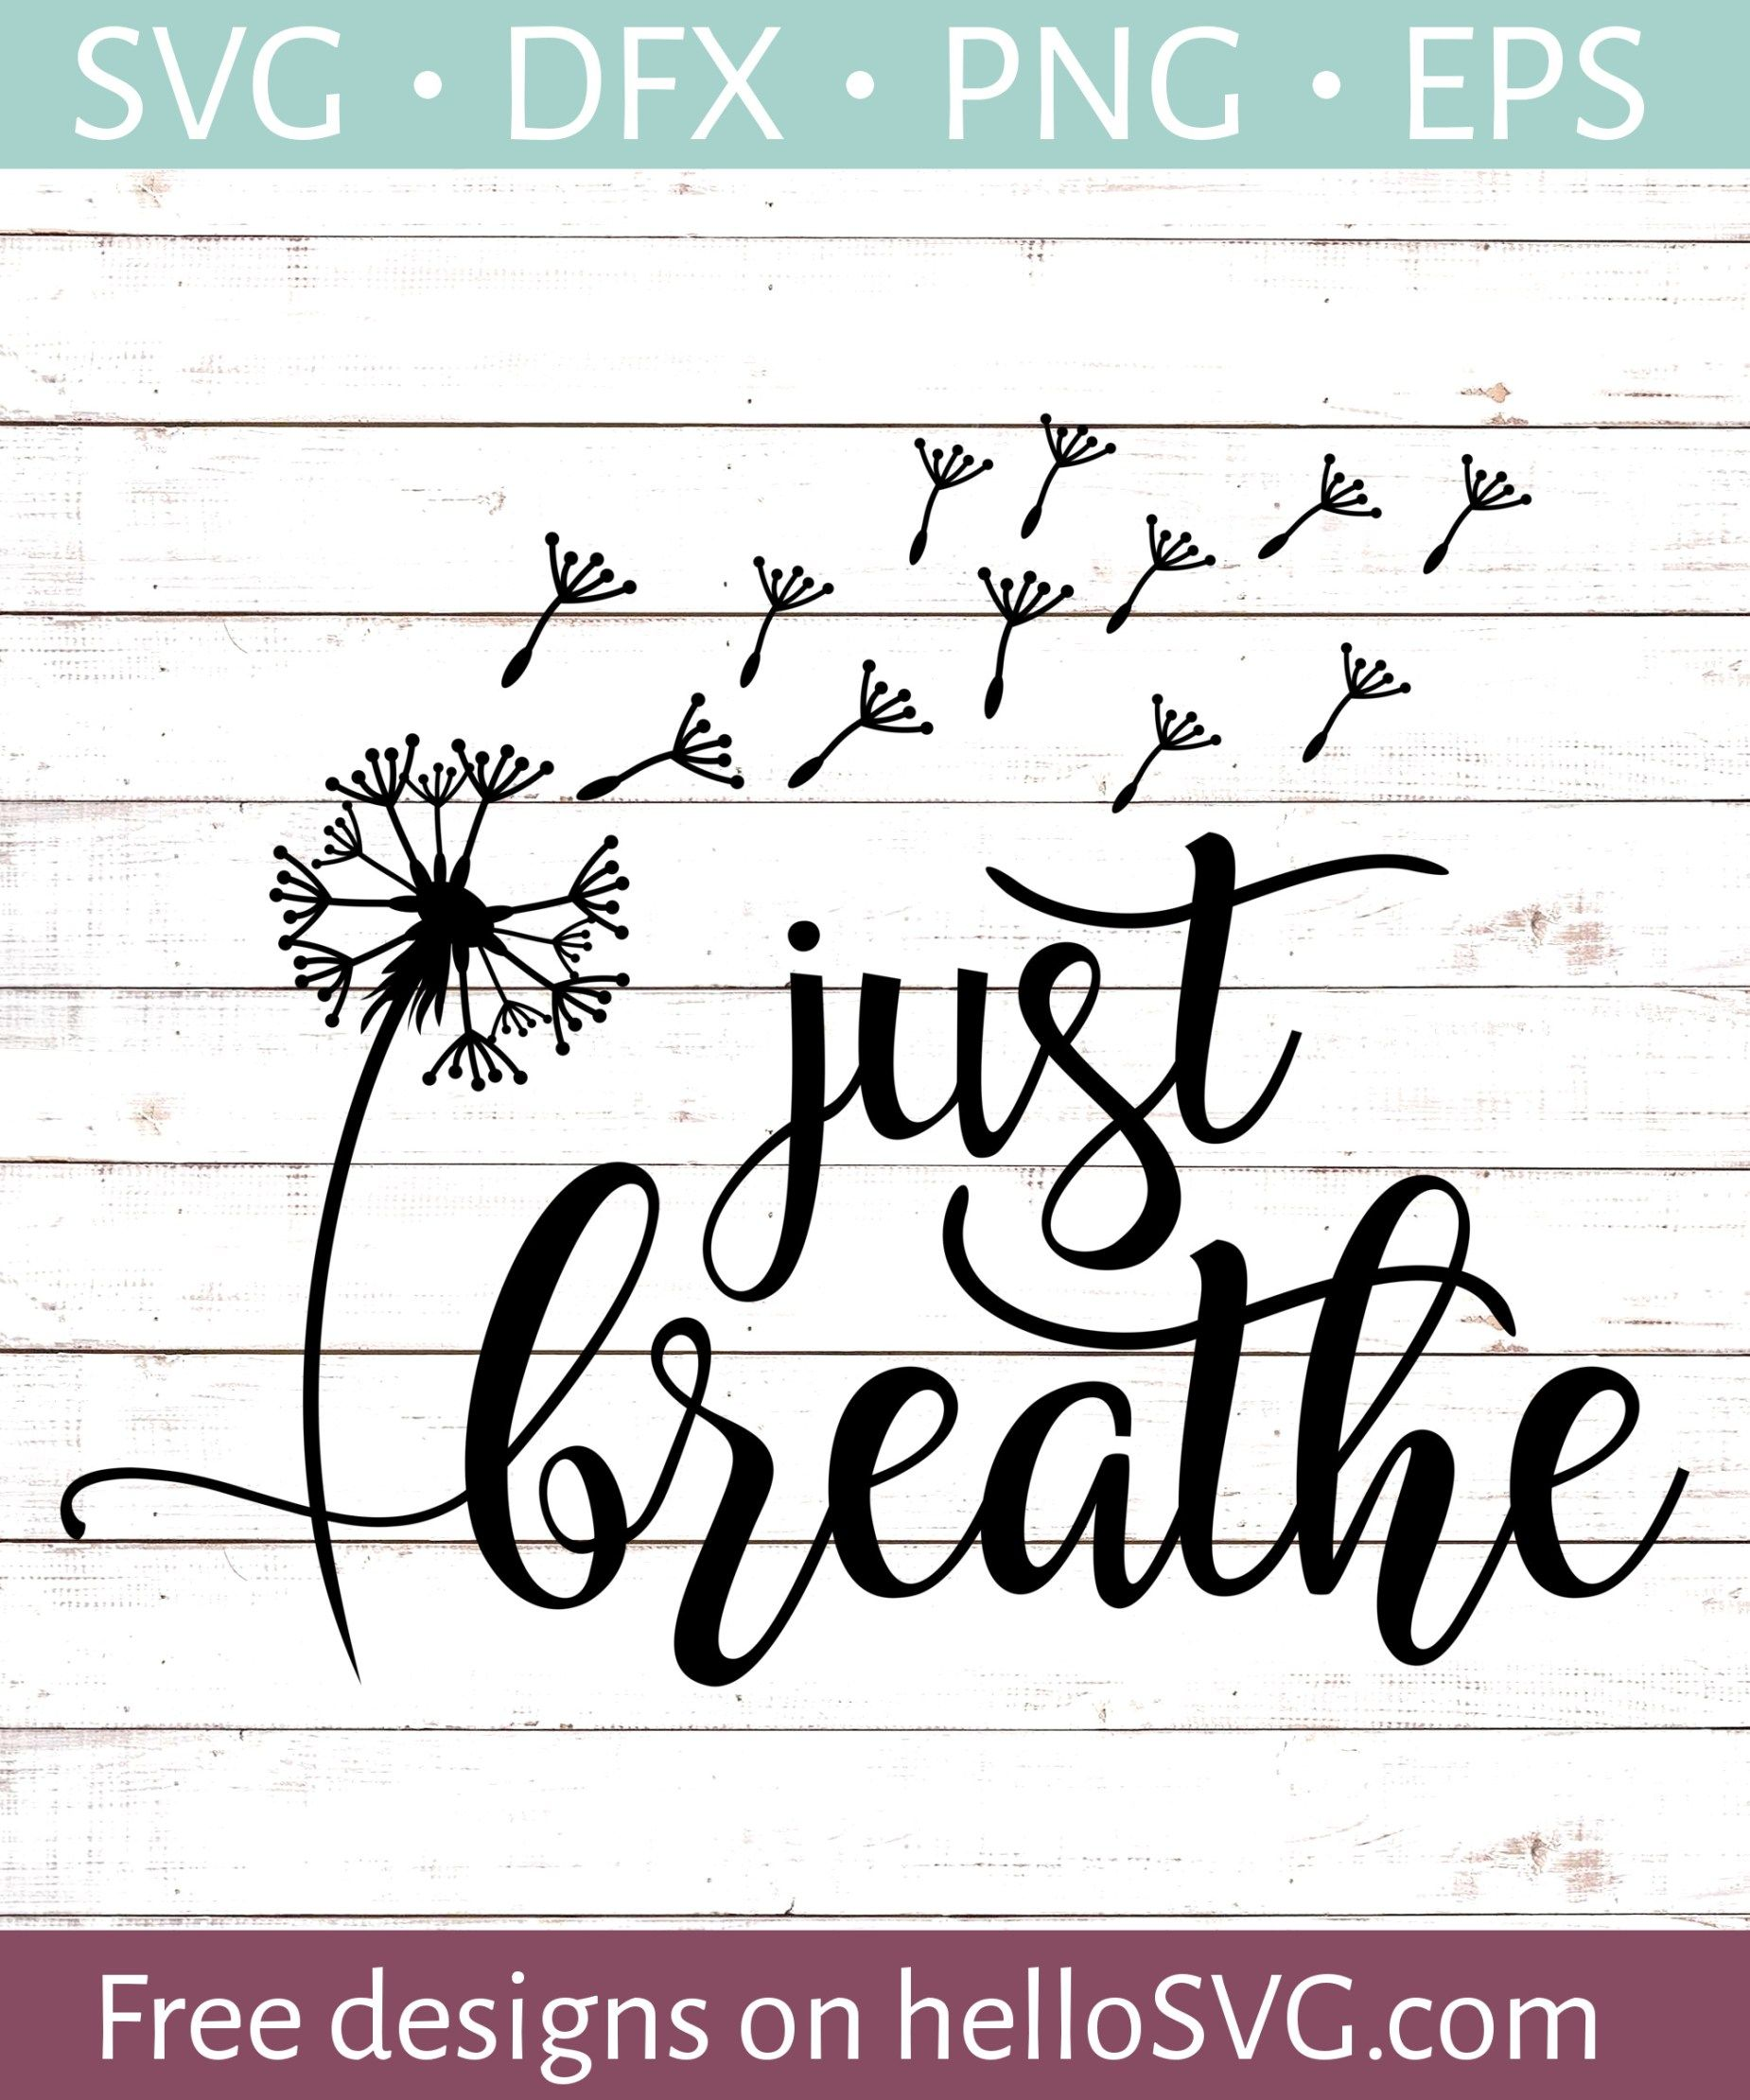 Just Breathe (with Dandelion) SVG Free SVG files